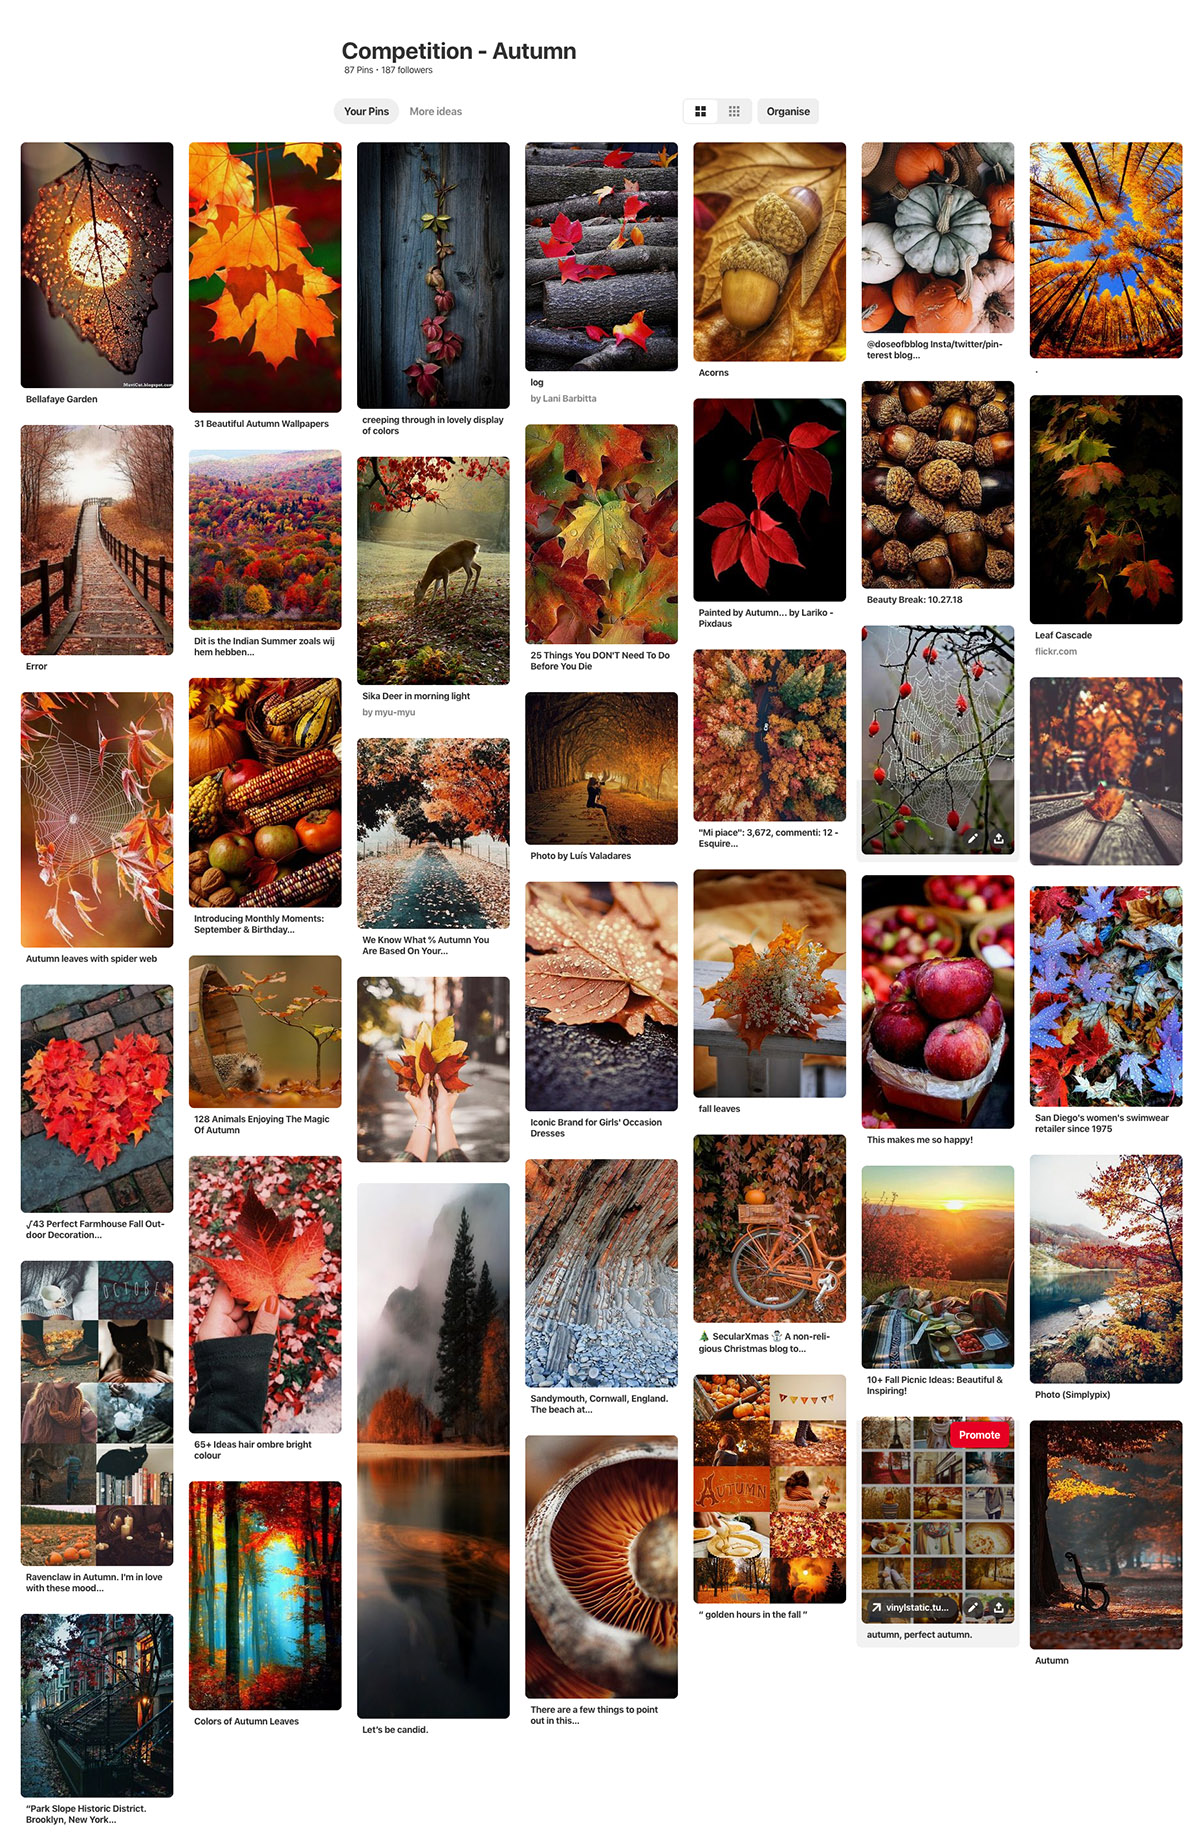 Autumn pictures inspire gallery on Pinterest